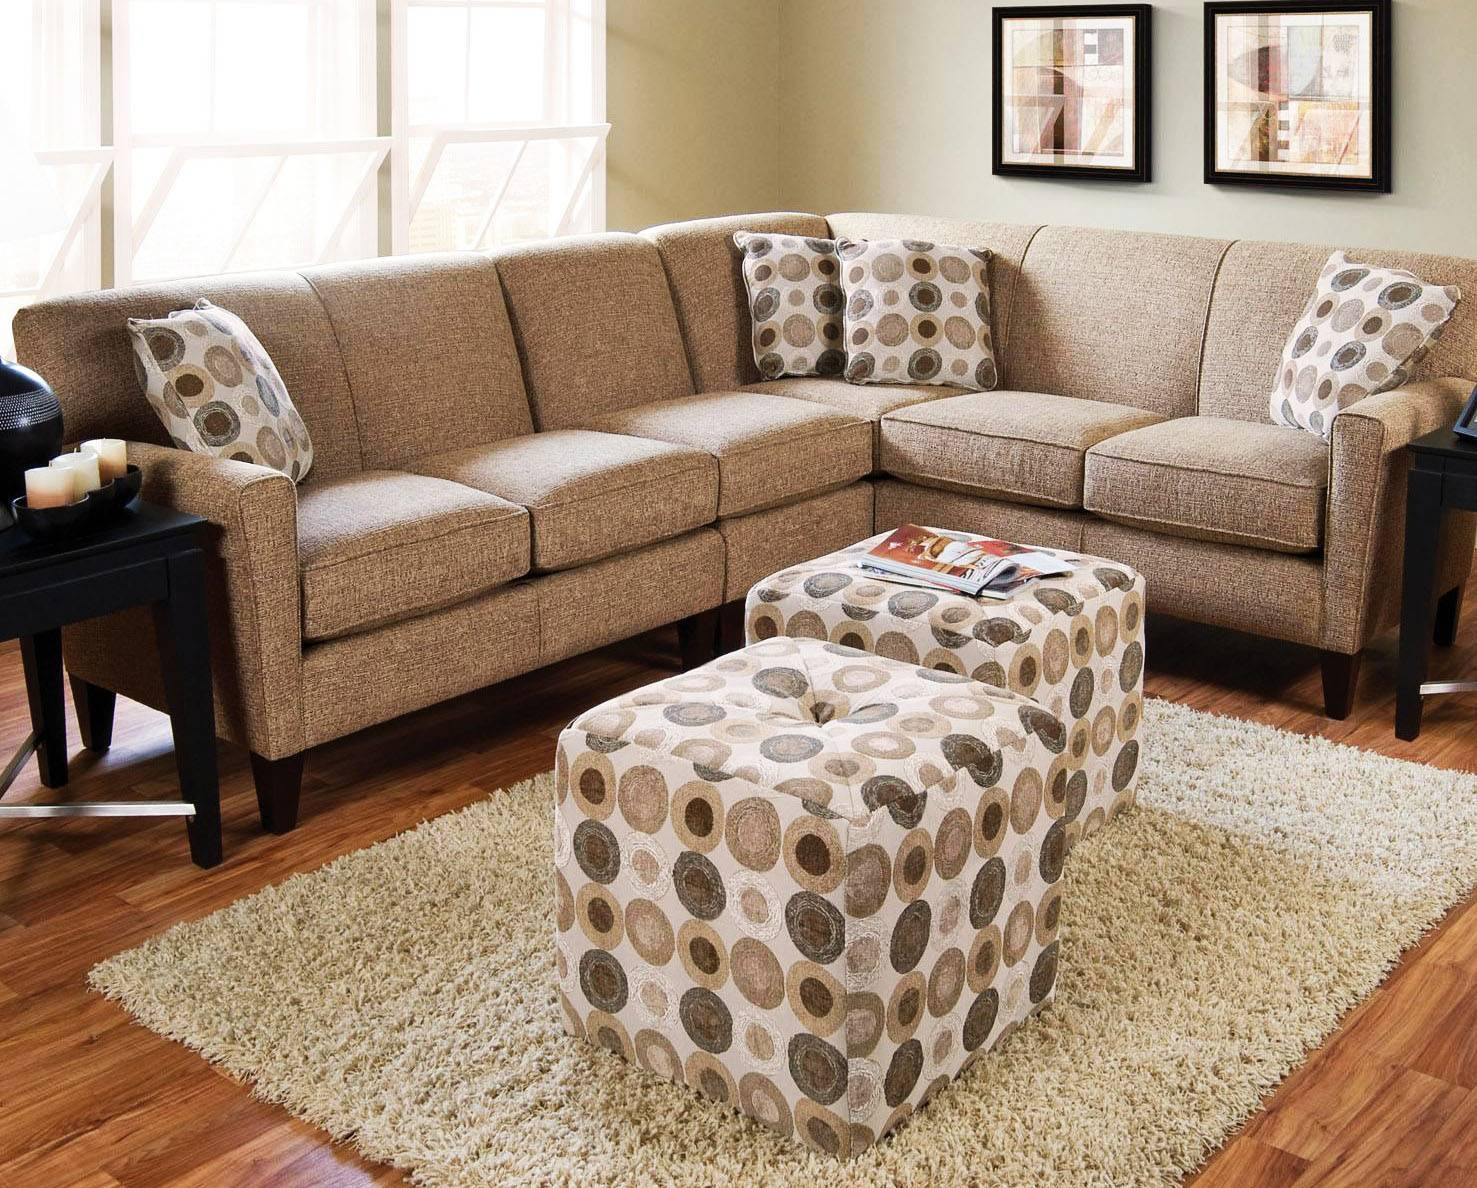 Excellent Find Small Sectional Sofas For Small Spaces 52 In Condo inside Condo Sectional Sofas (Image 14 of 30)